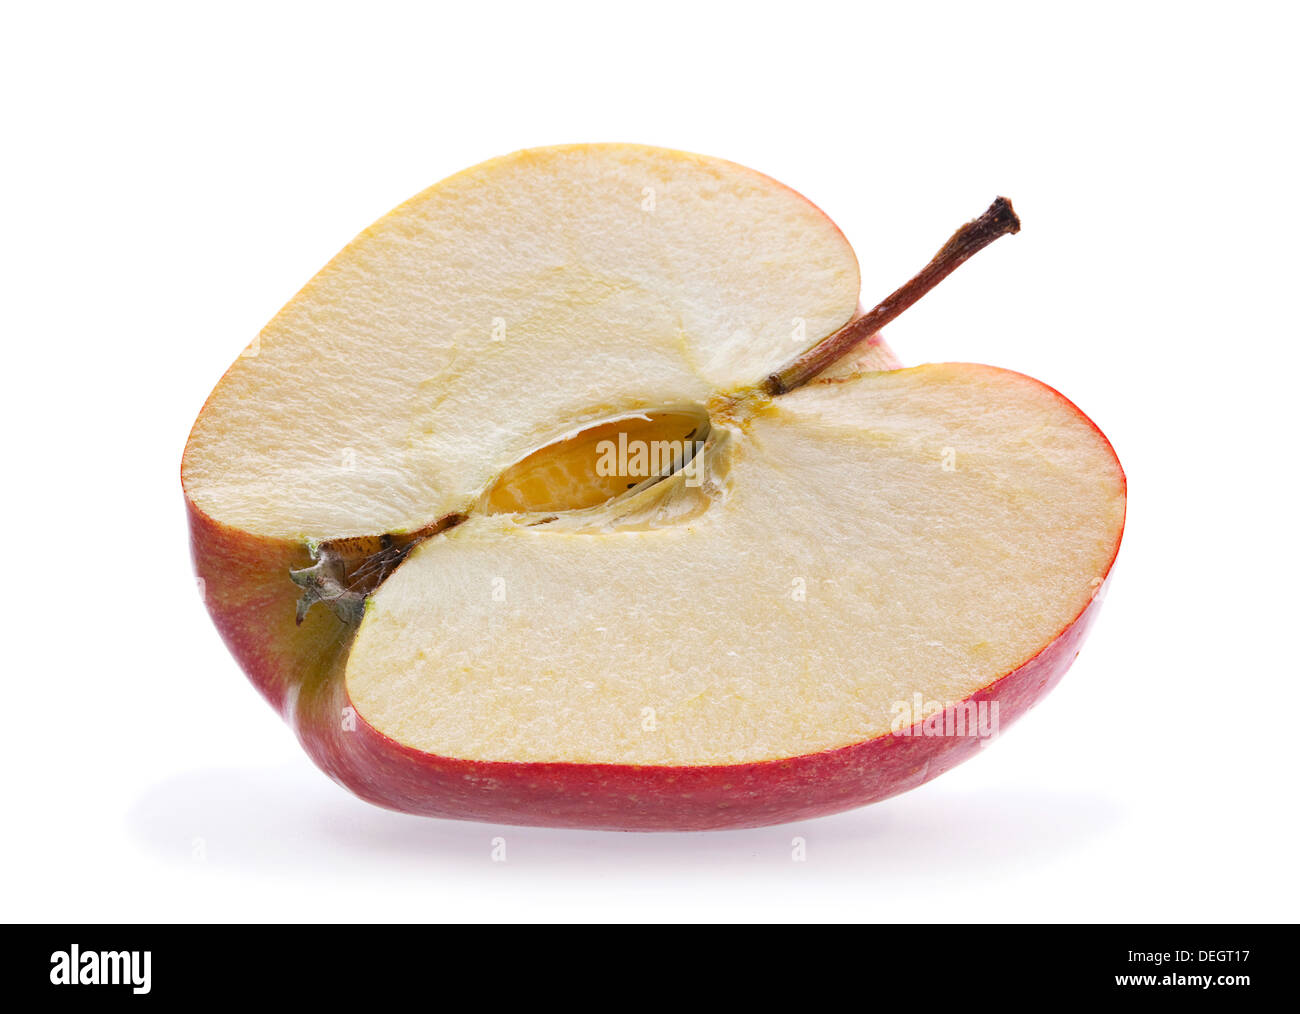 Apple part closeup isolated on white - Stock Image